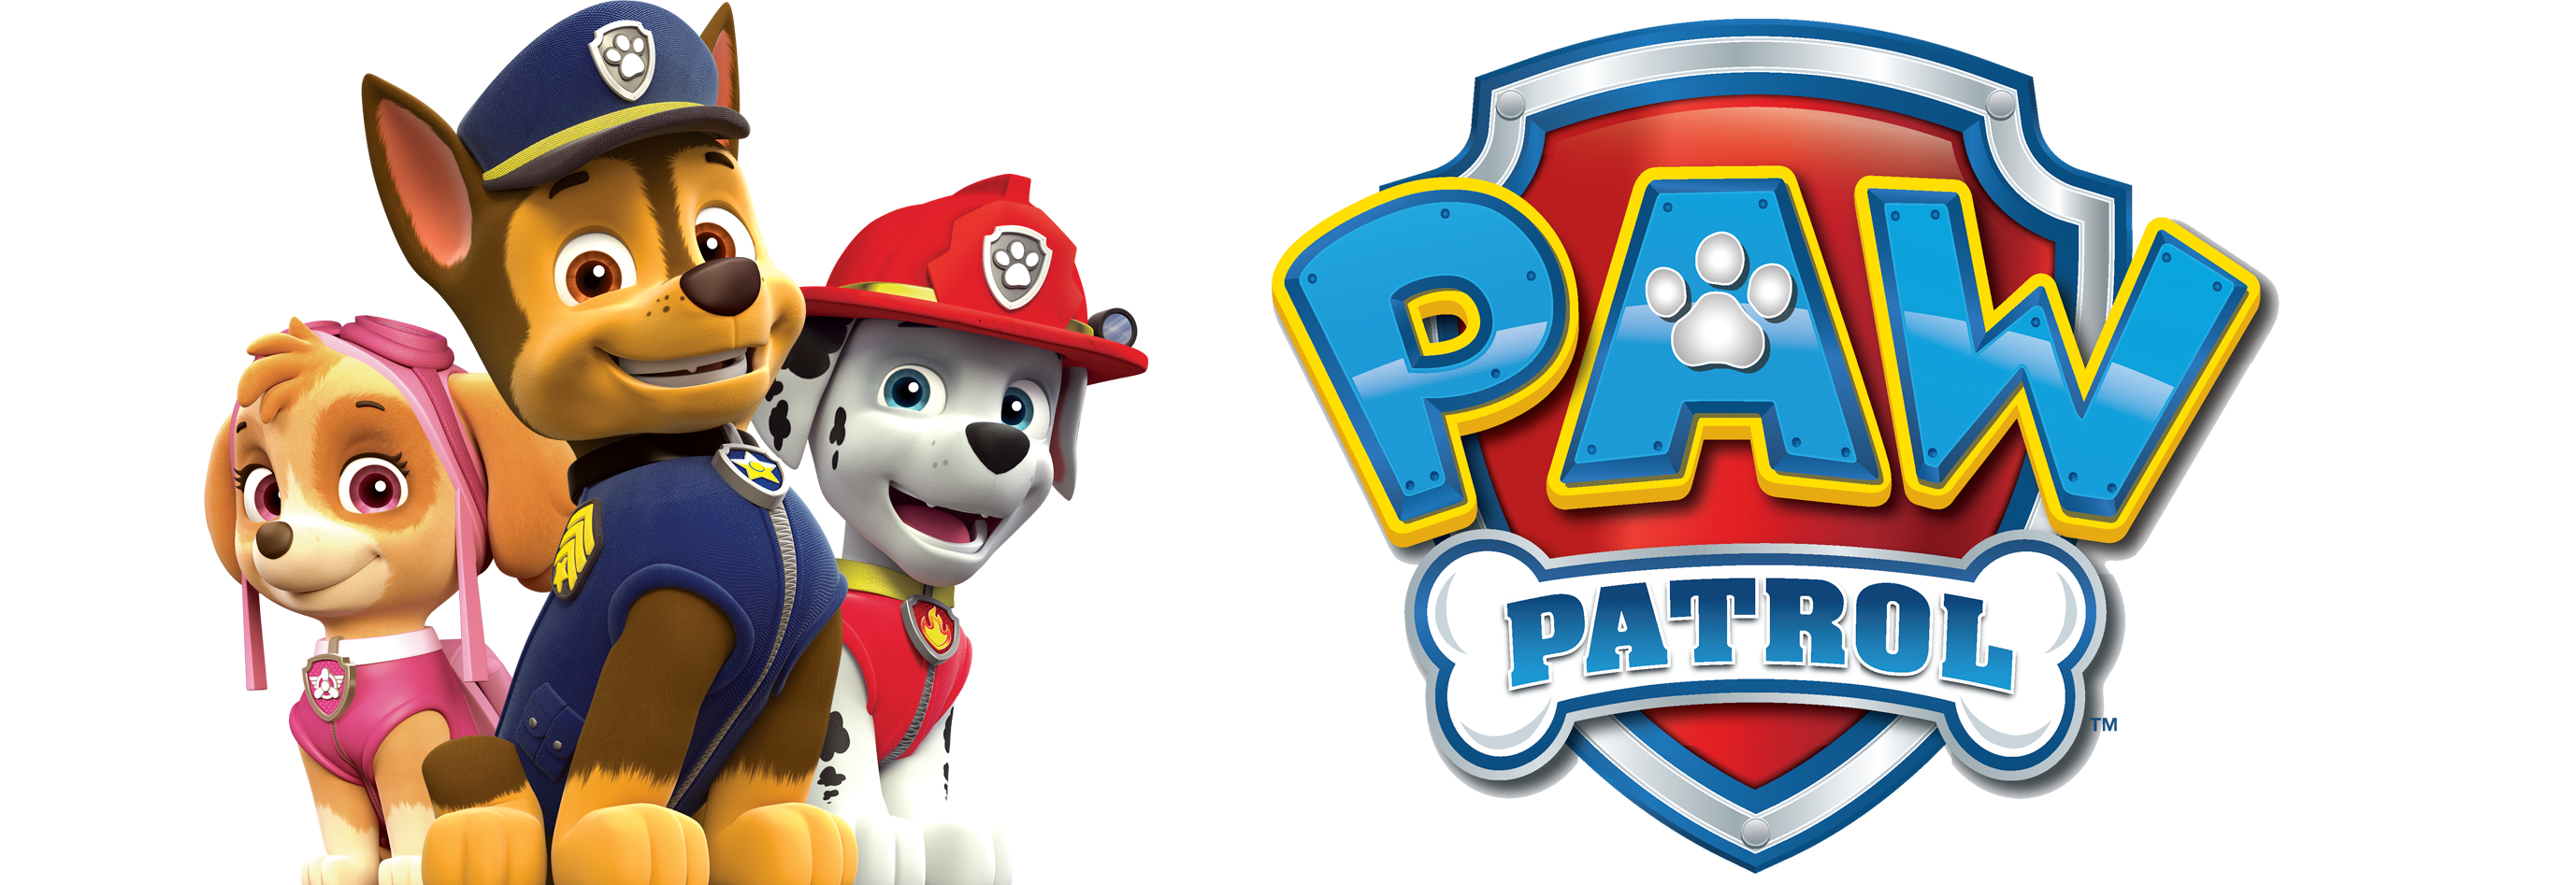 Paw Patrol Vector Art At Getdrawings Com Free For Personal Use Paw